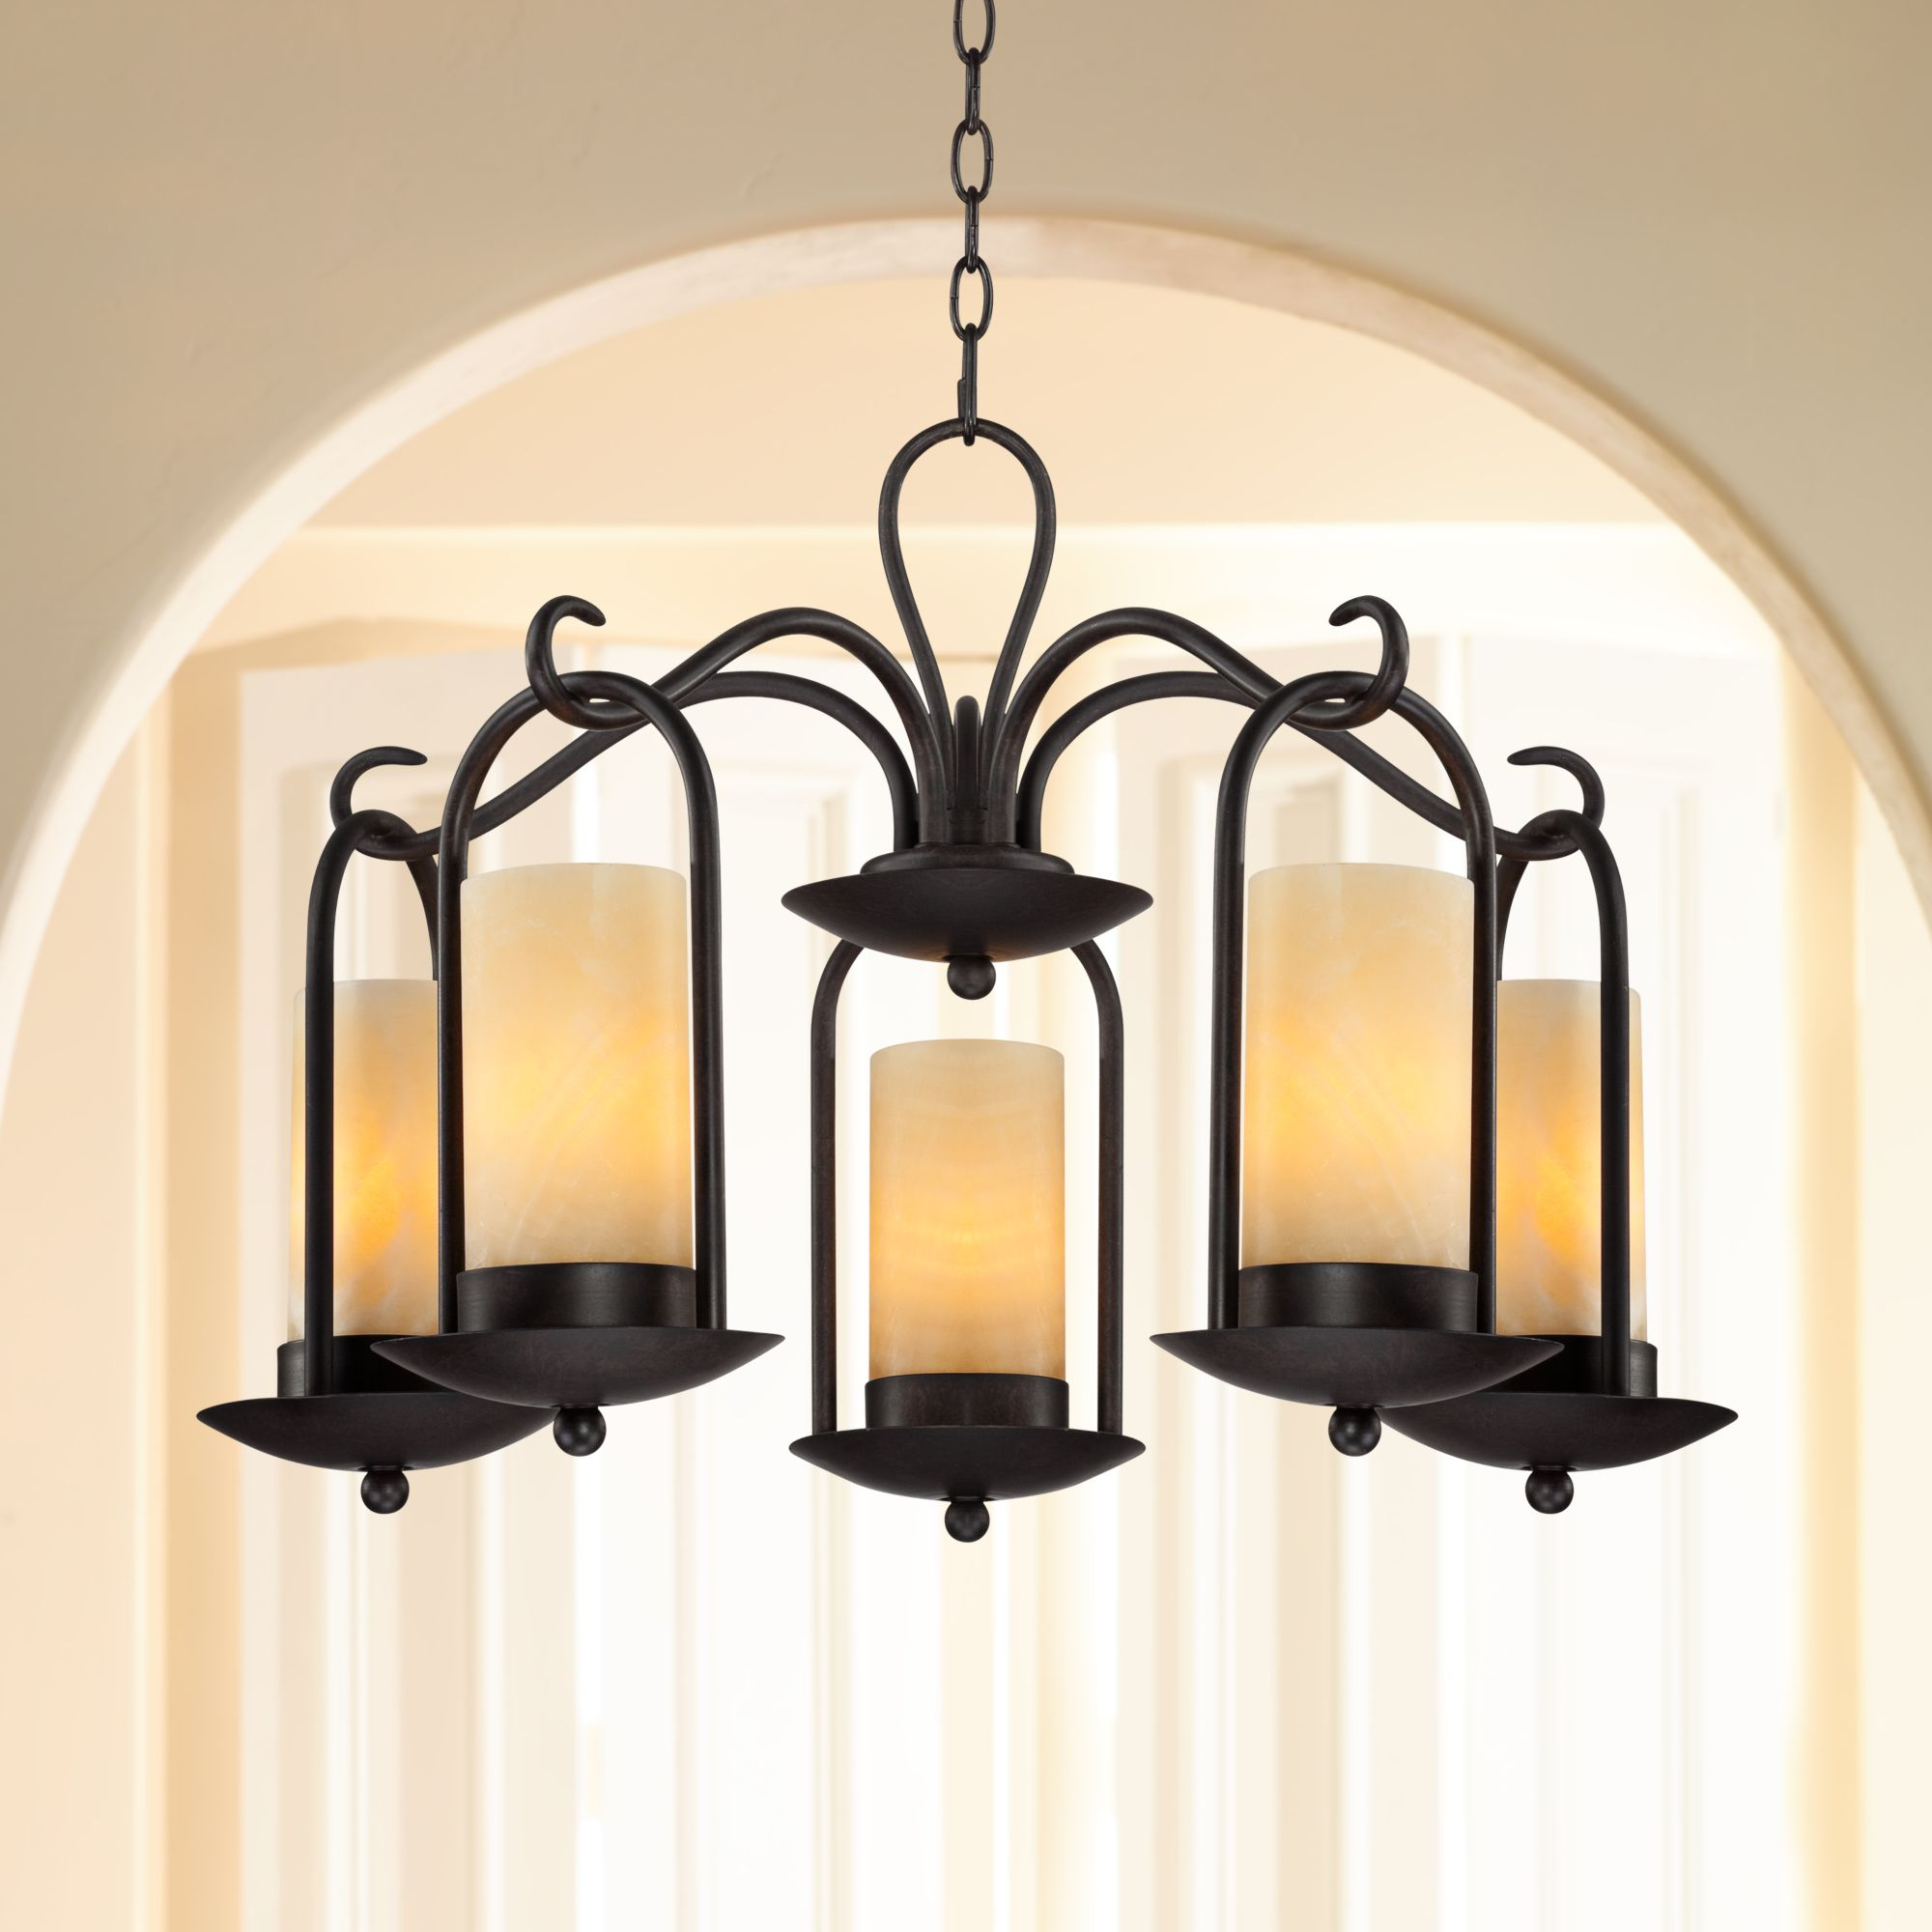 Franklin iron works onyx faux stone candle 30 wide indoor outdoor chandelier